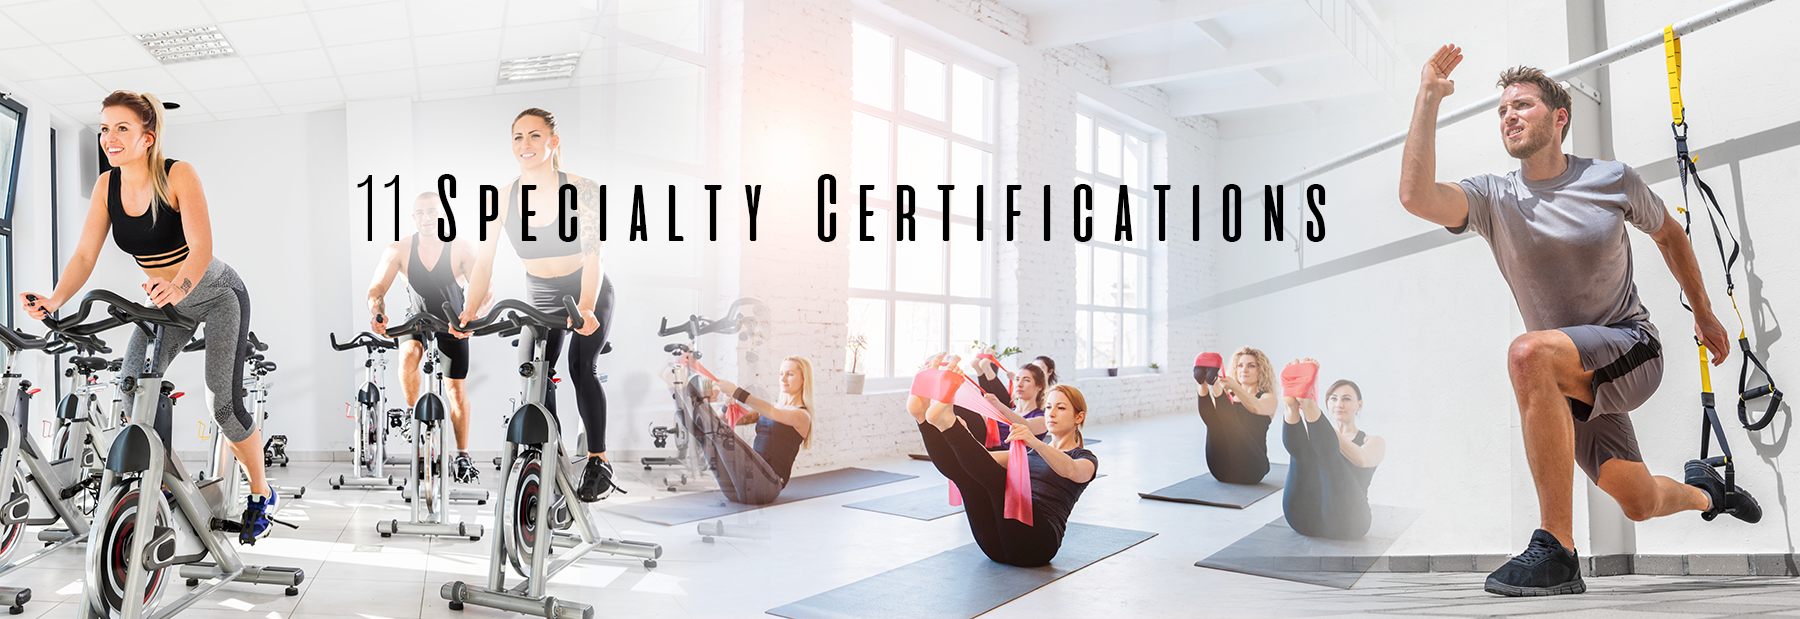 Nccpt Personal Trainer Certification Online